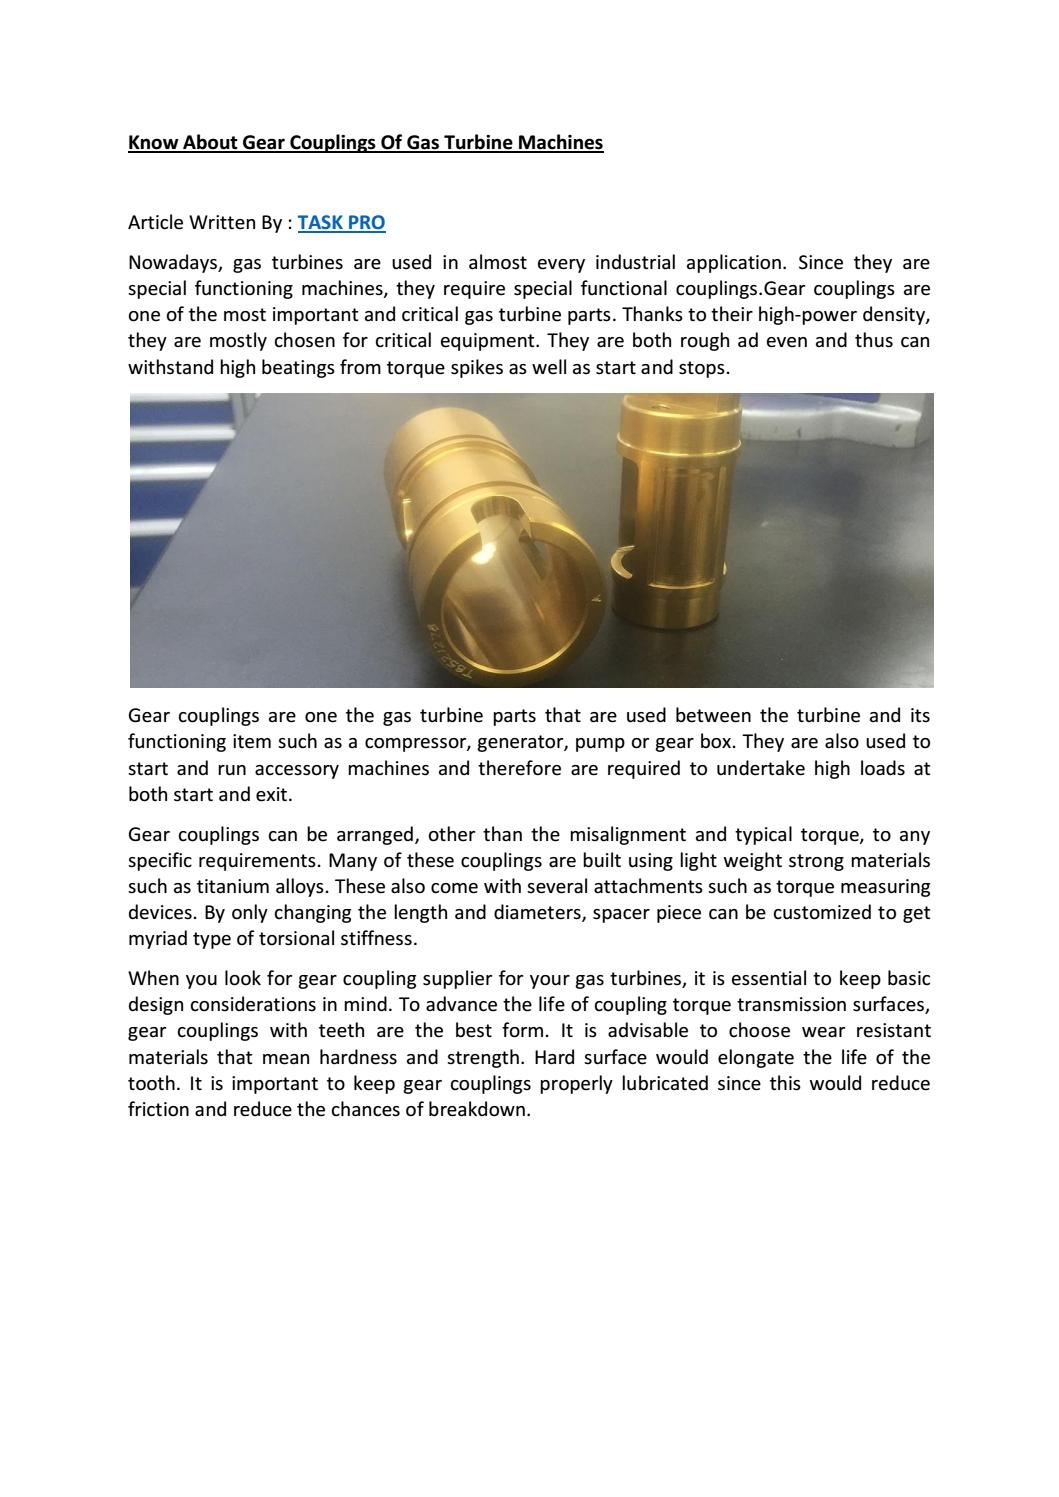 Know about gear couplings of gas turbine machines by GRIFFIN William